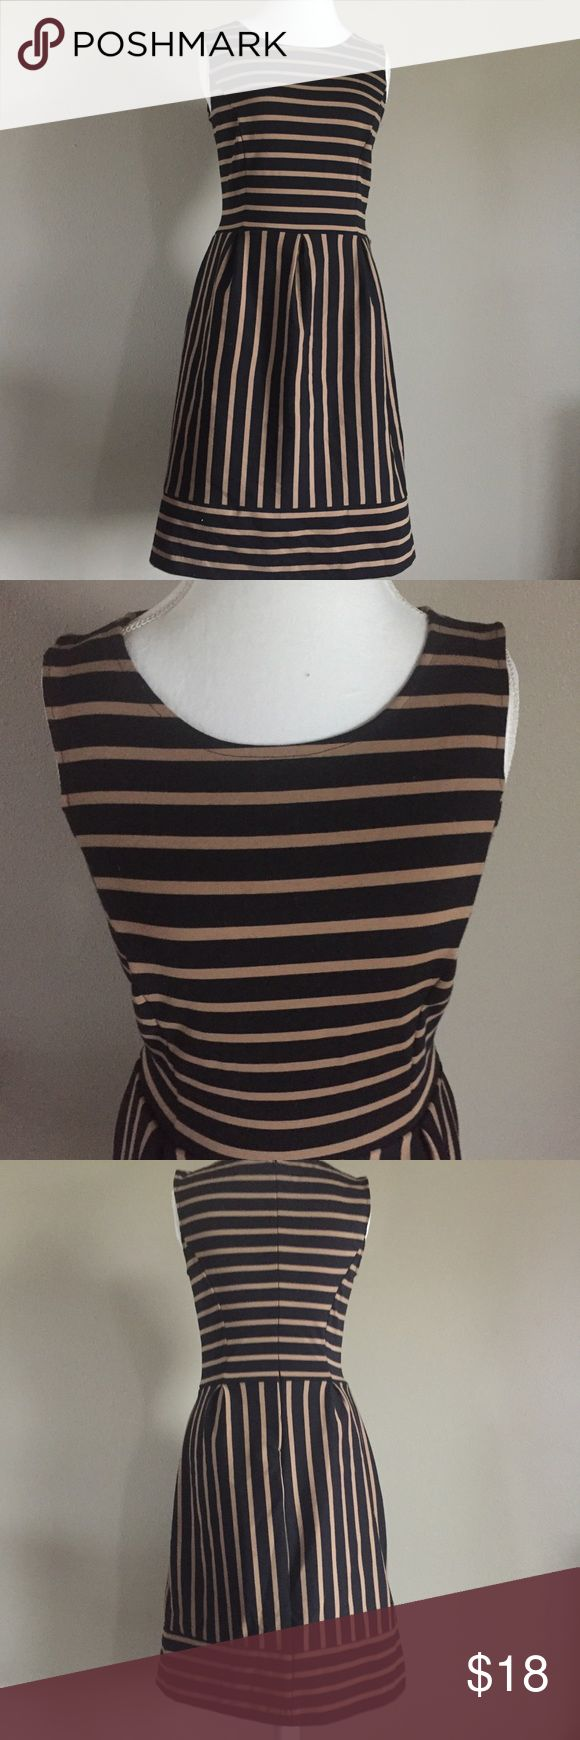 Merona Ponte Stripe Dress with Pockets Great dress for work or going out  in great condition and even has pockets! Size M and is stretchy. No trades. Merona Dresses Midi